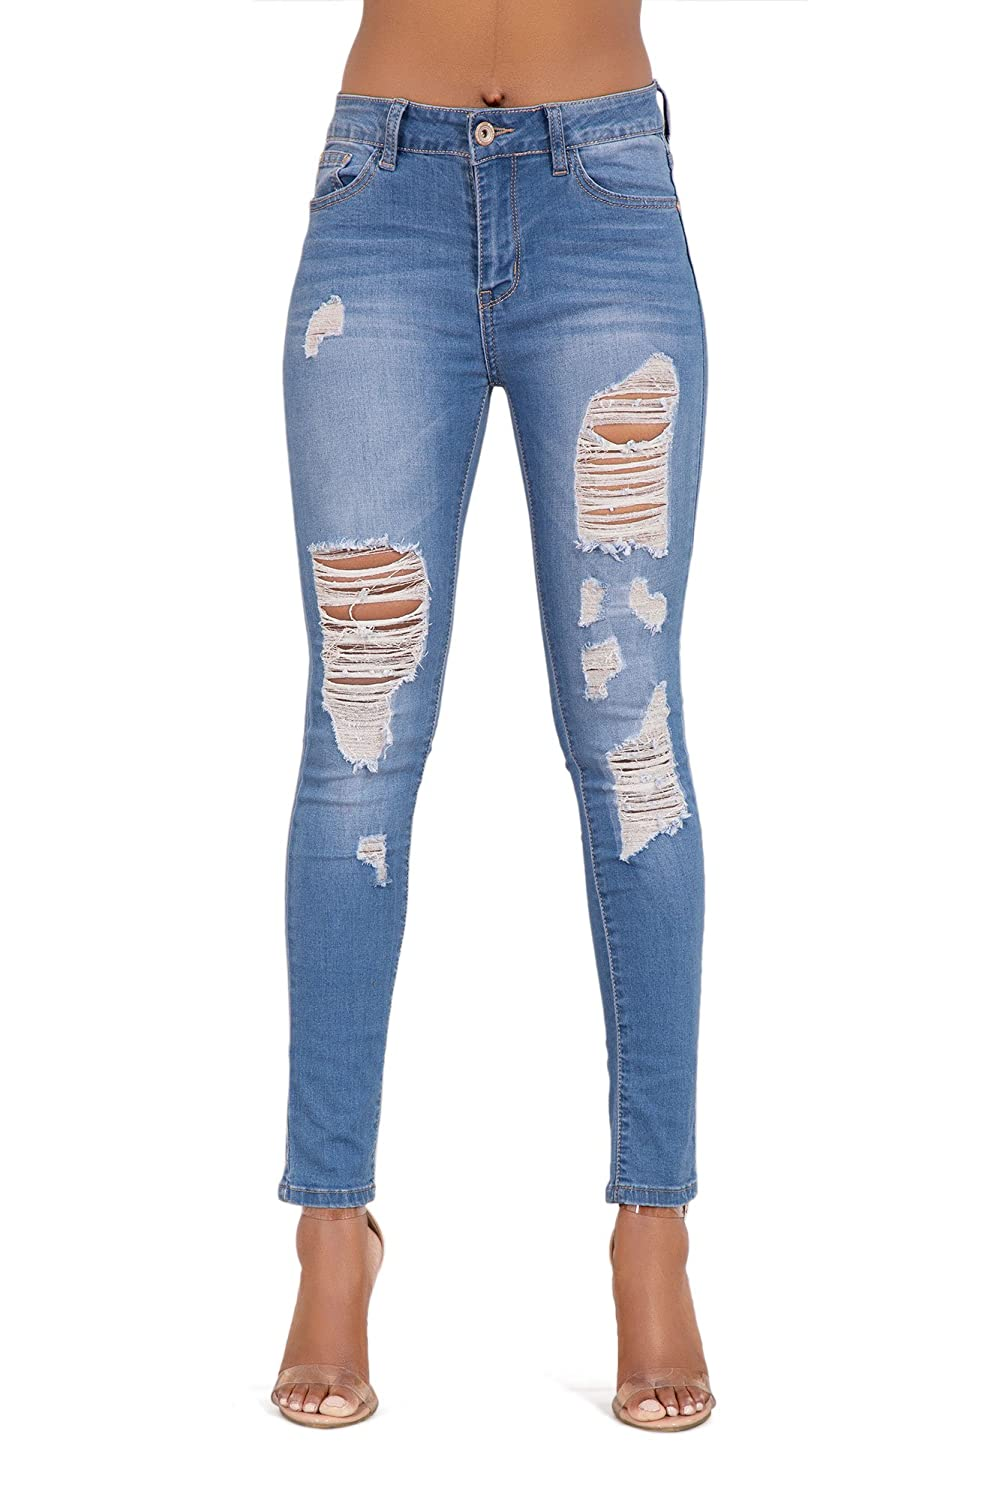 cheap LustyChic - Jeans - Femme - adosmanos.co.cr 3c88eee8d80